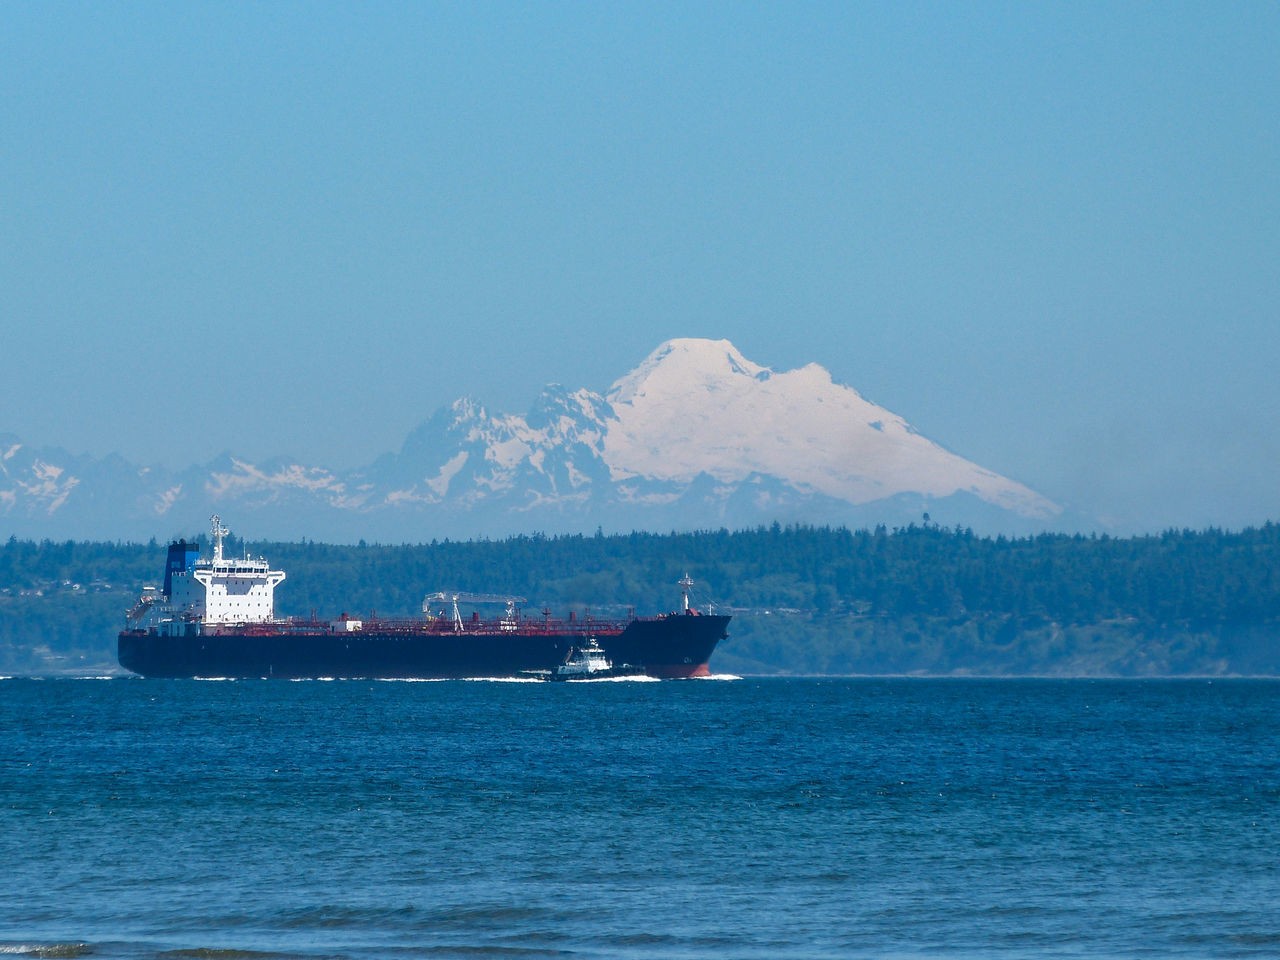 Beauty In Nature Blue Boat Cascade Mountains Day Freighter Mode Of Transport Mountain Mountain Range Mt. Baker Nautical Vessel Outdoors Puget Sound Scenics Sea Ship Sky Tugboat Water